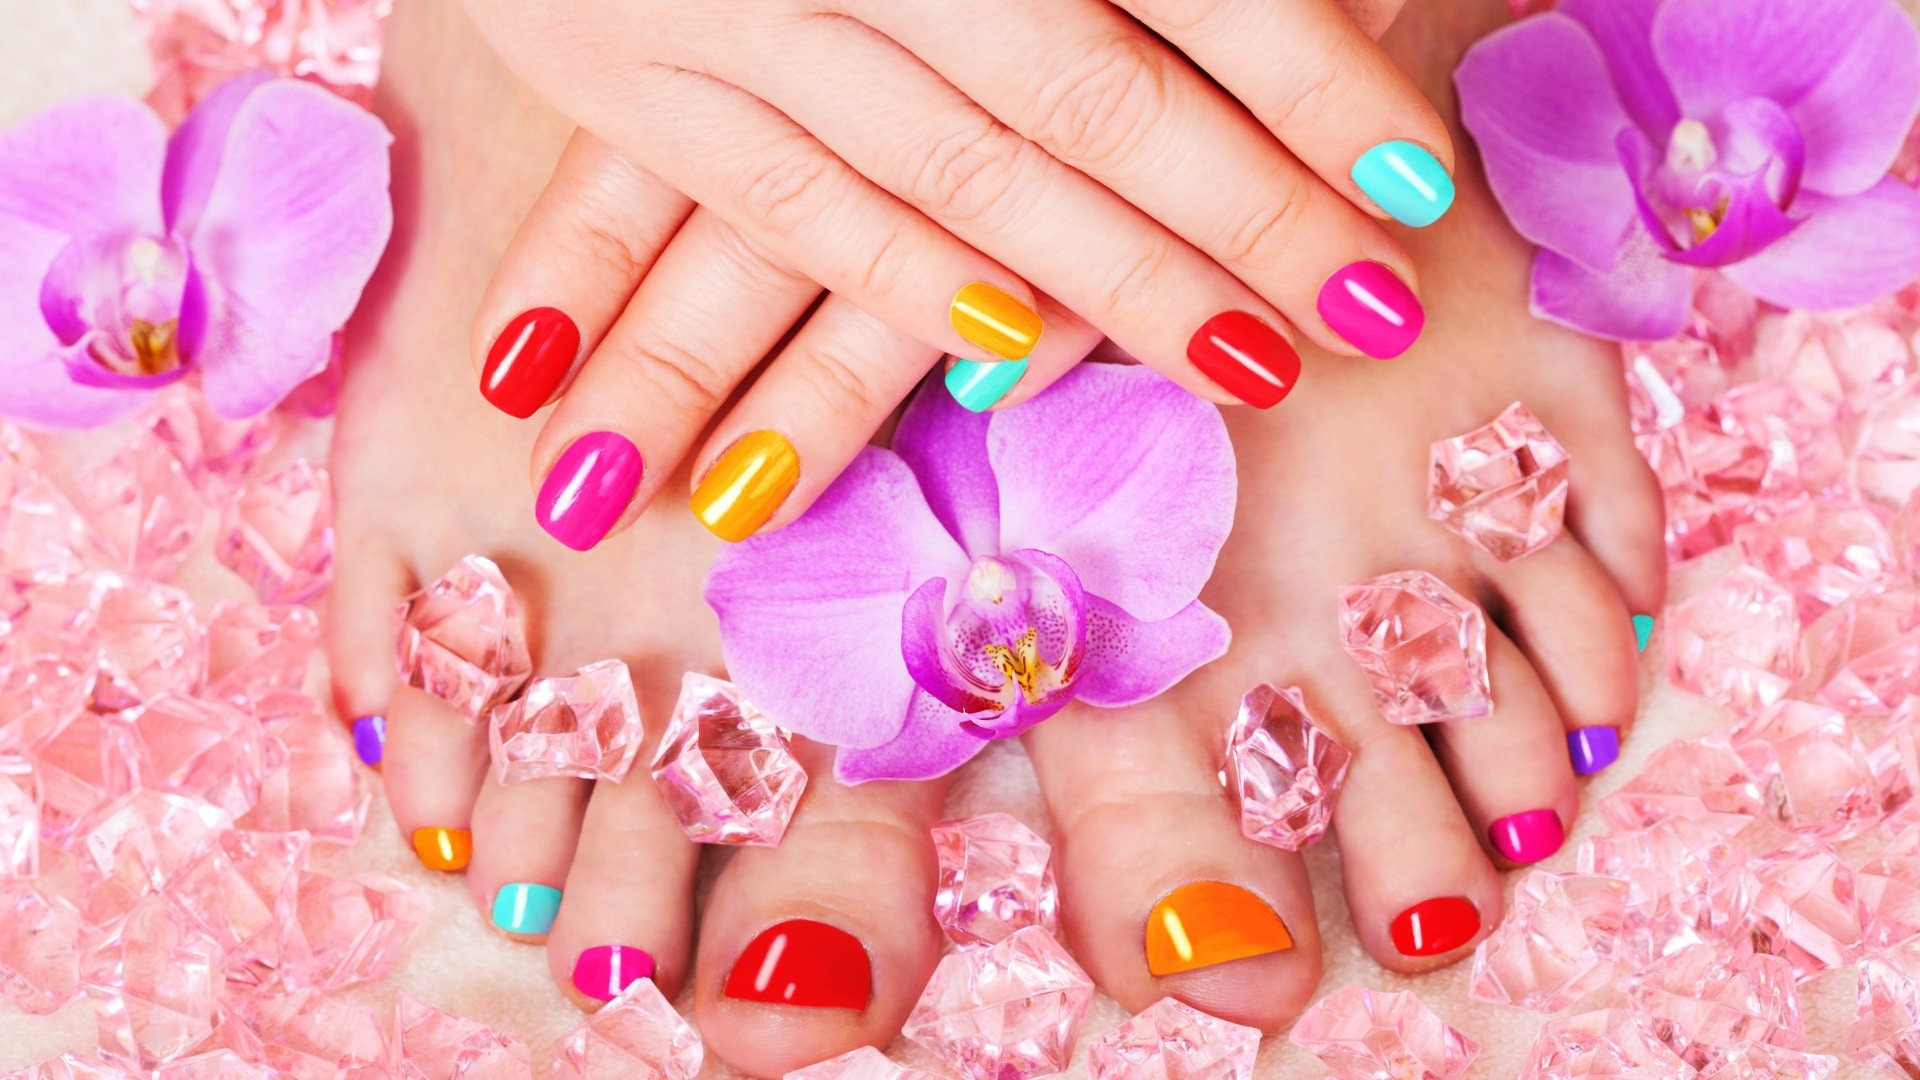 Manicure and Pedicure – Why you should get it done often